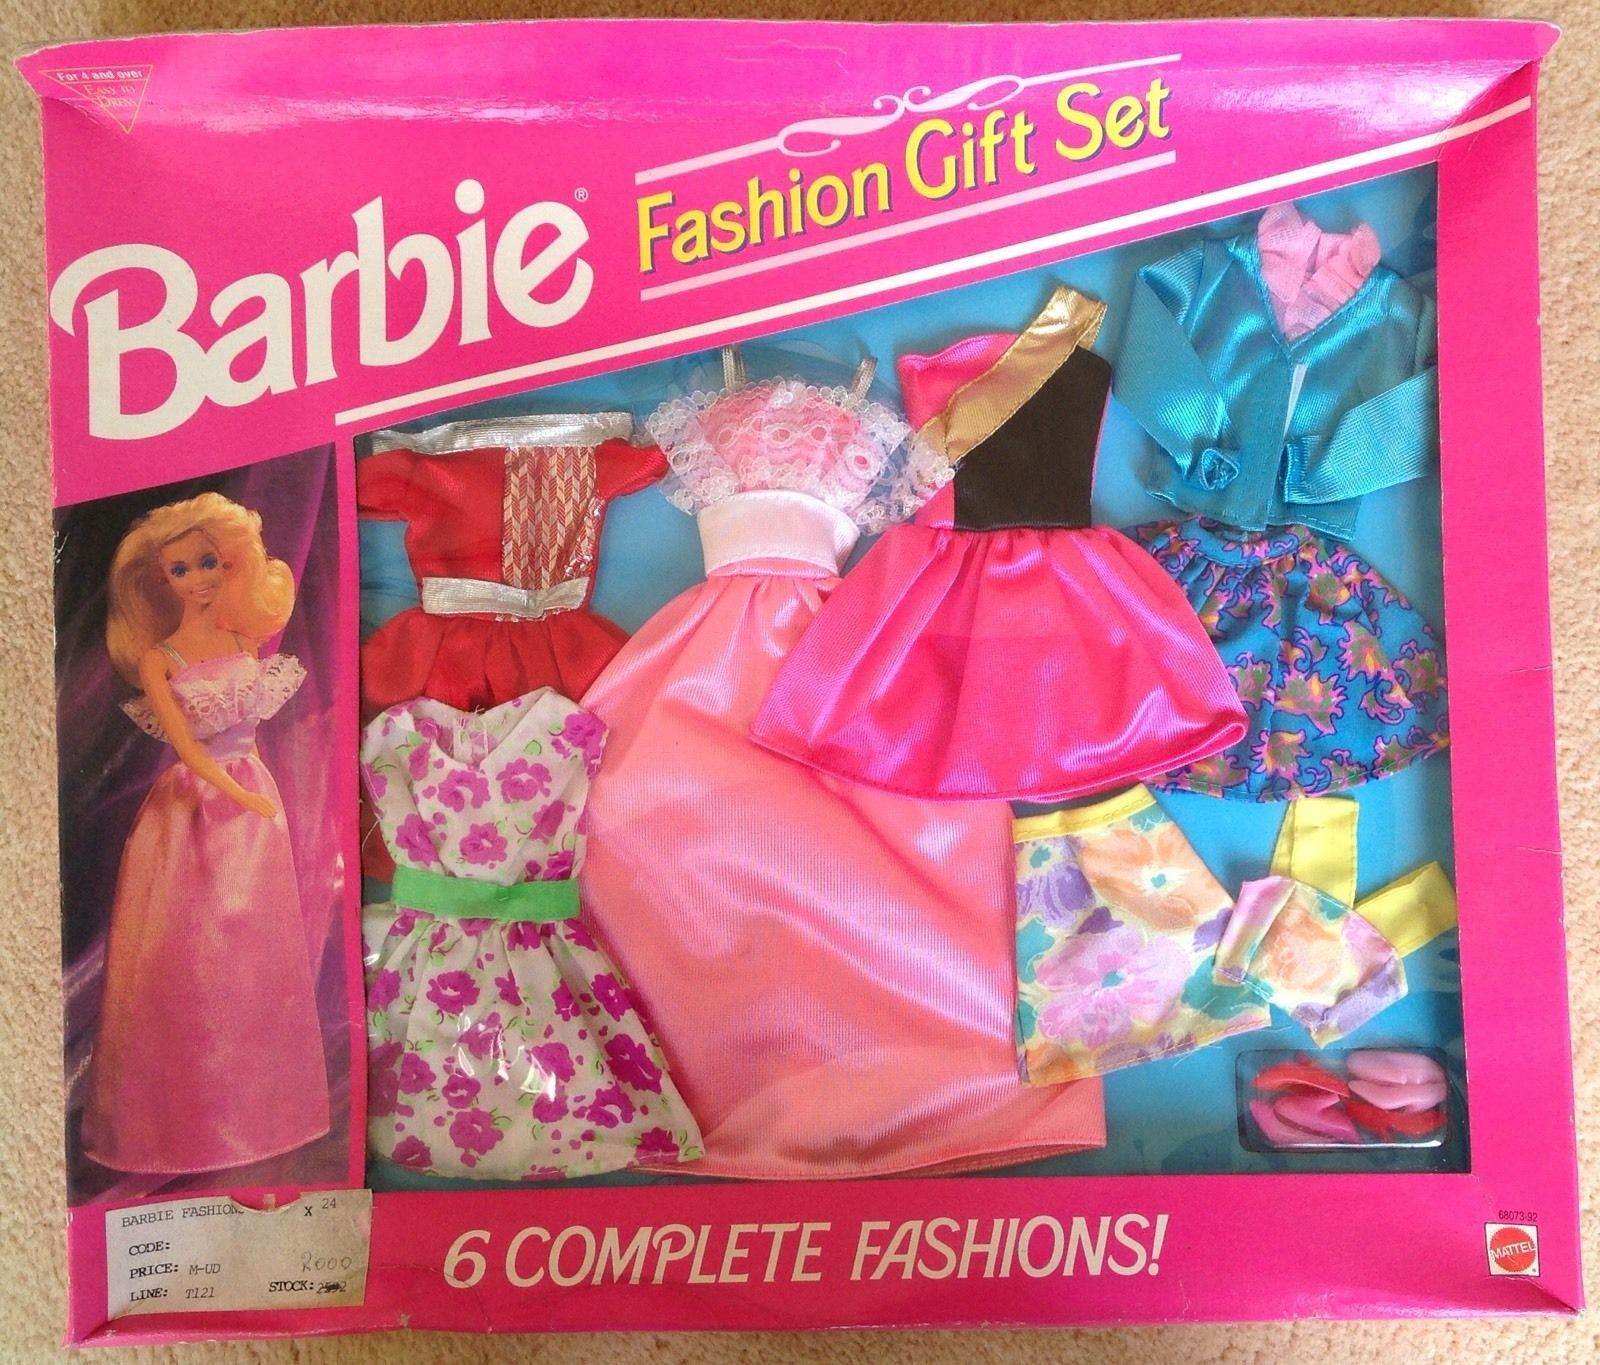 RARE Barbie FASHION GIFT SET 1993 by Mattel New in Box